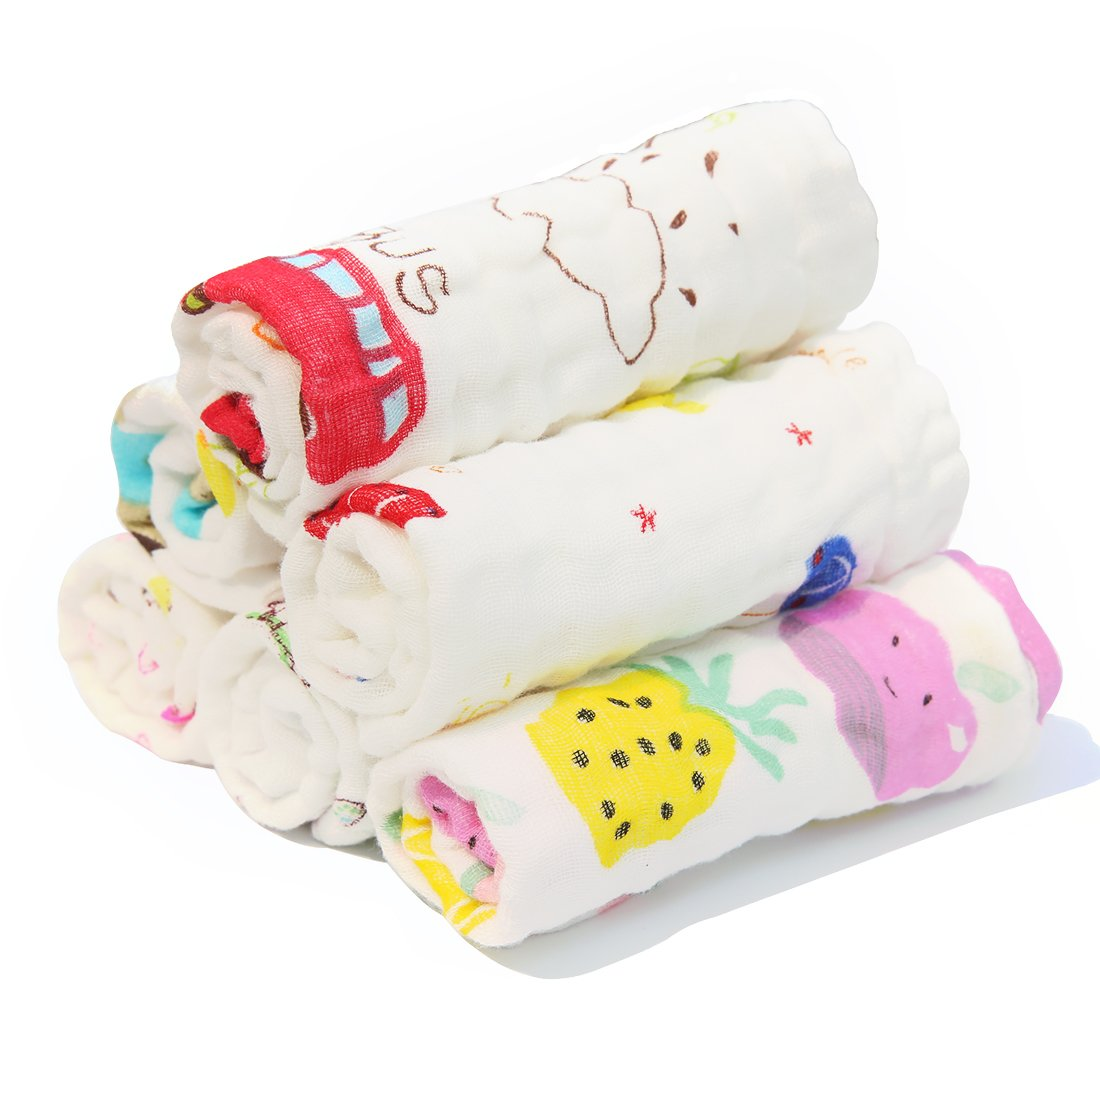 IBraFashion Baby Muslin Washcloths Soft Cotton Baby Face Towels Multi-Purpose for Sensitive Skin Natural 6 Packs (Printed Patterns Multicolored) BBT001